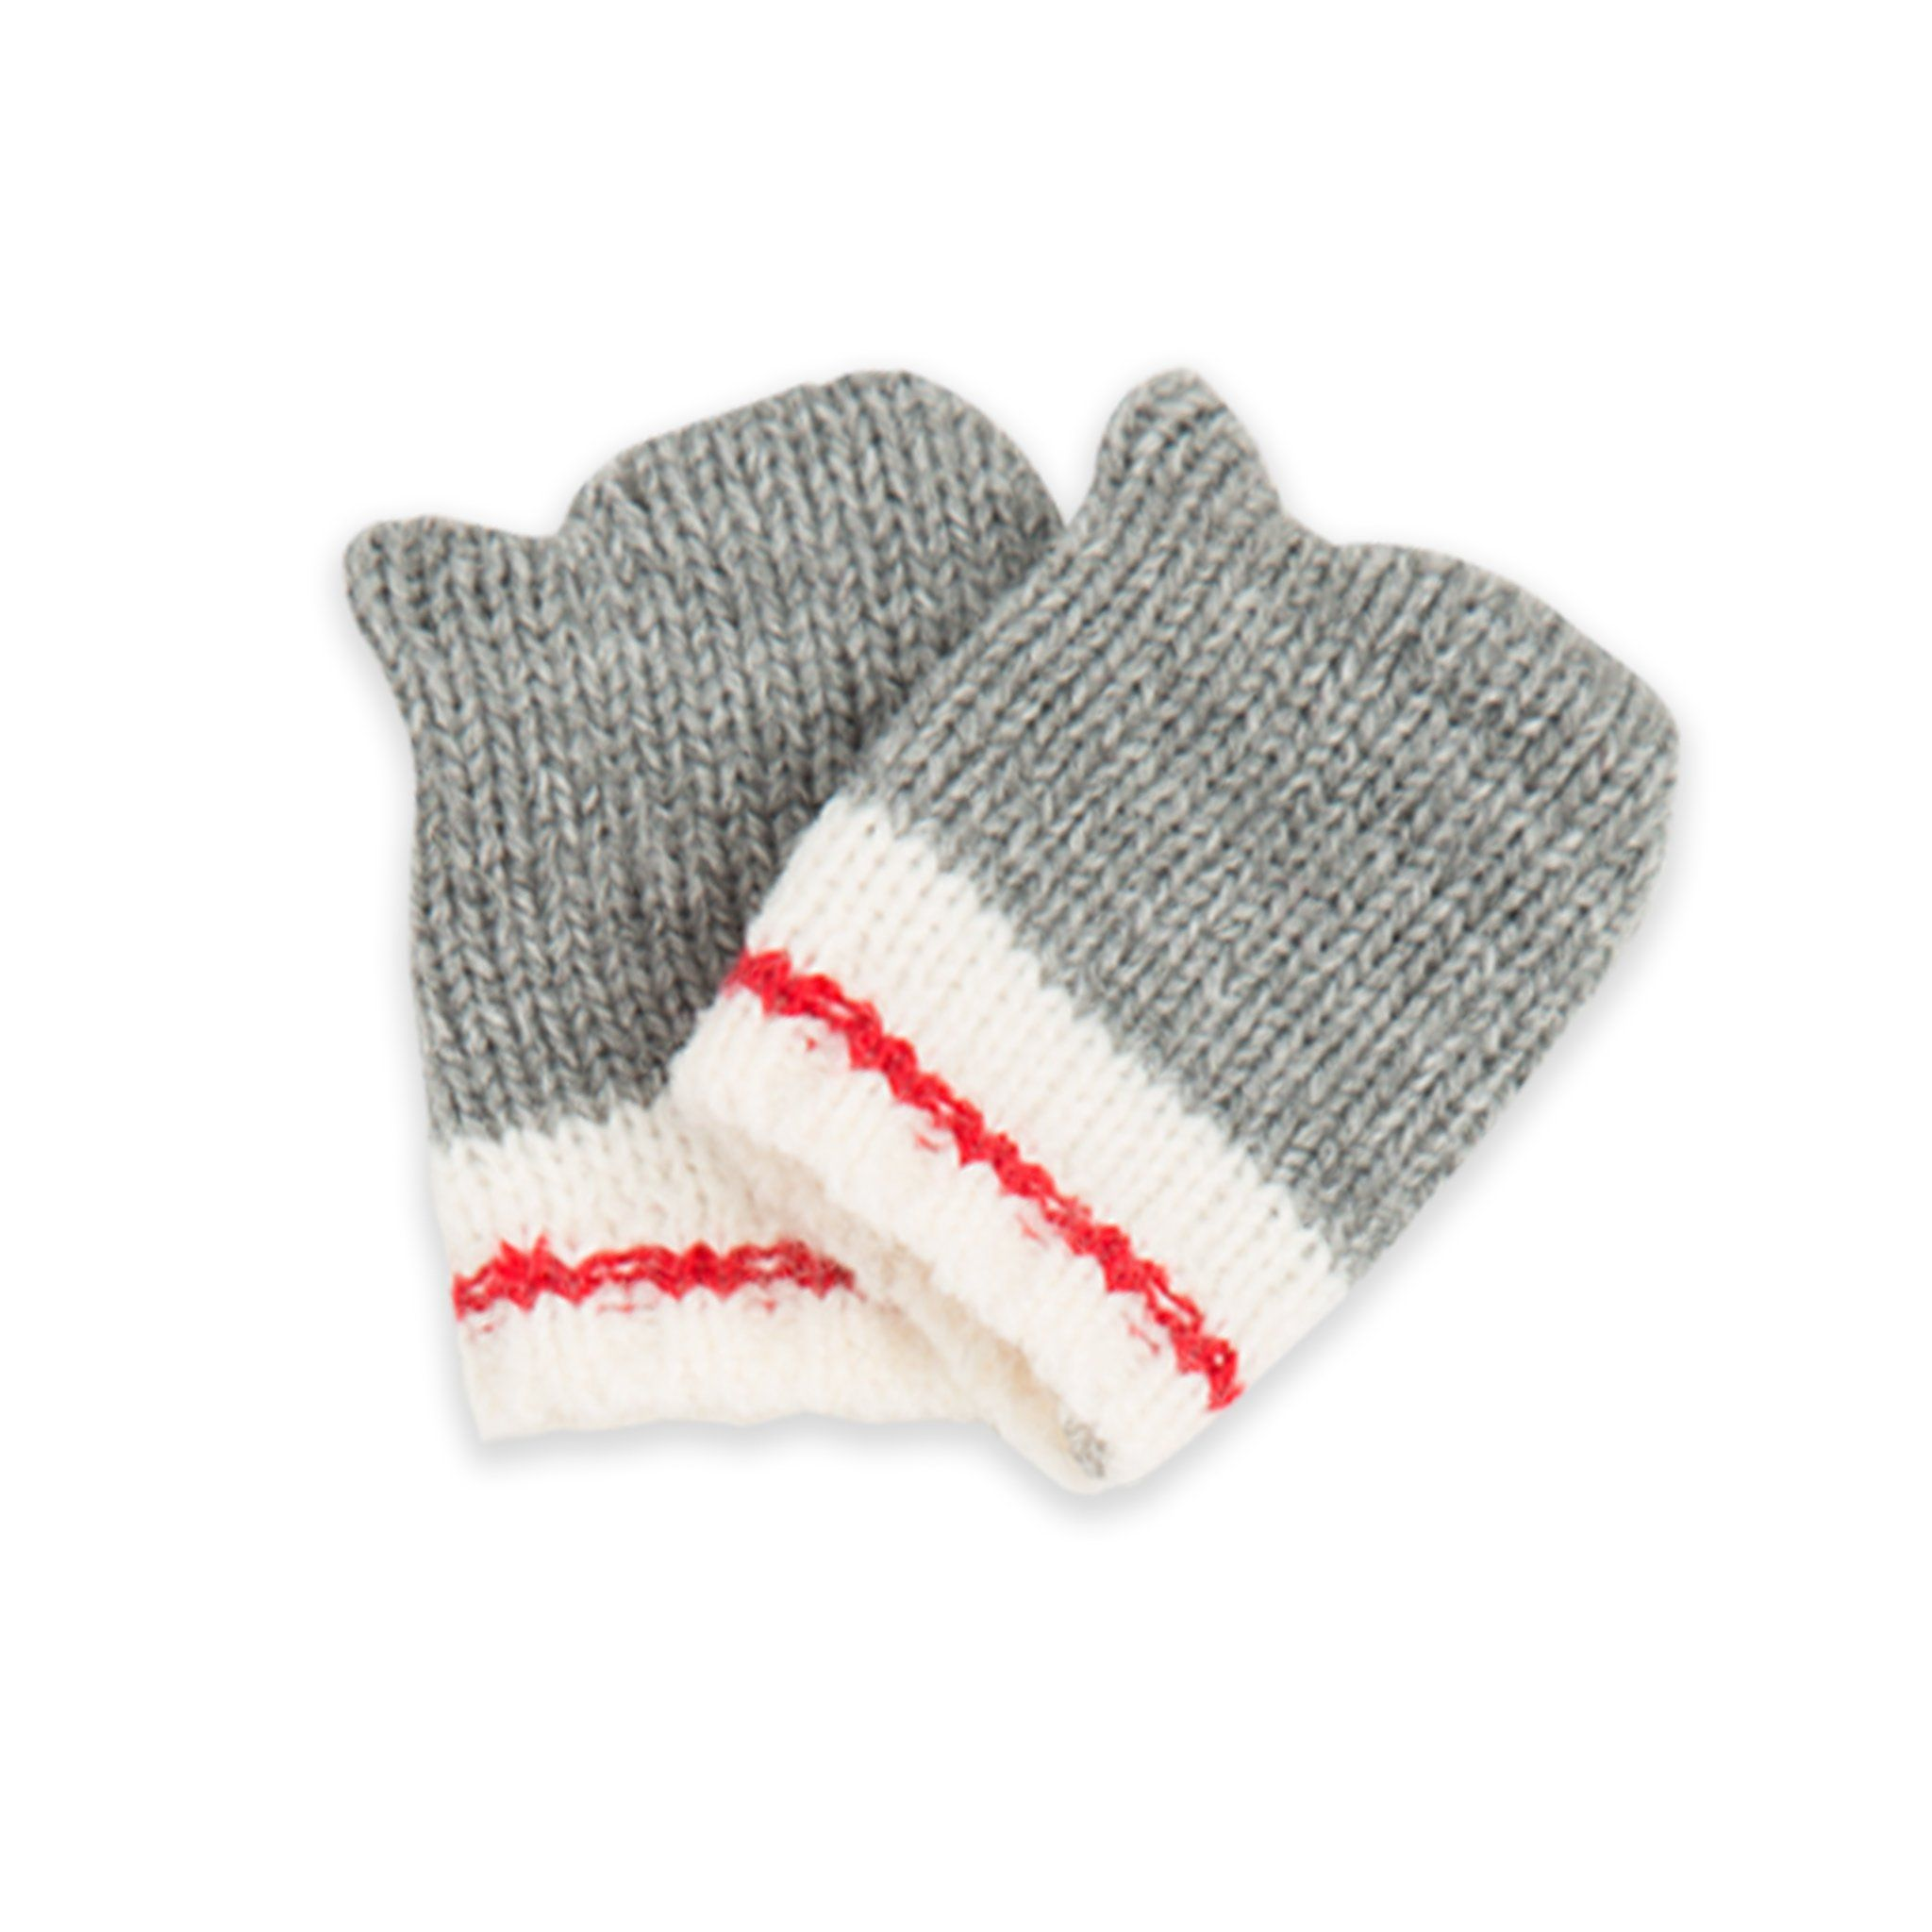 Northern Spirit knit grey mittens with white and red accent  fits all 18 inch dolls.